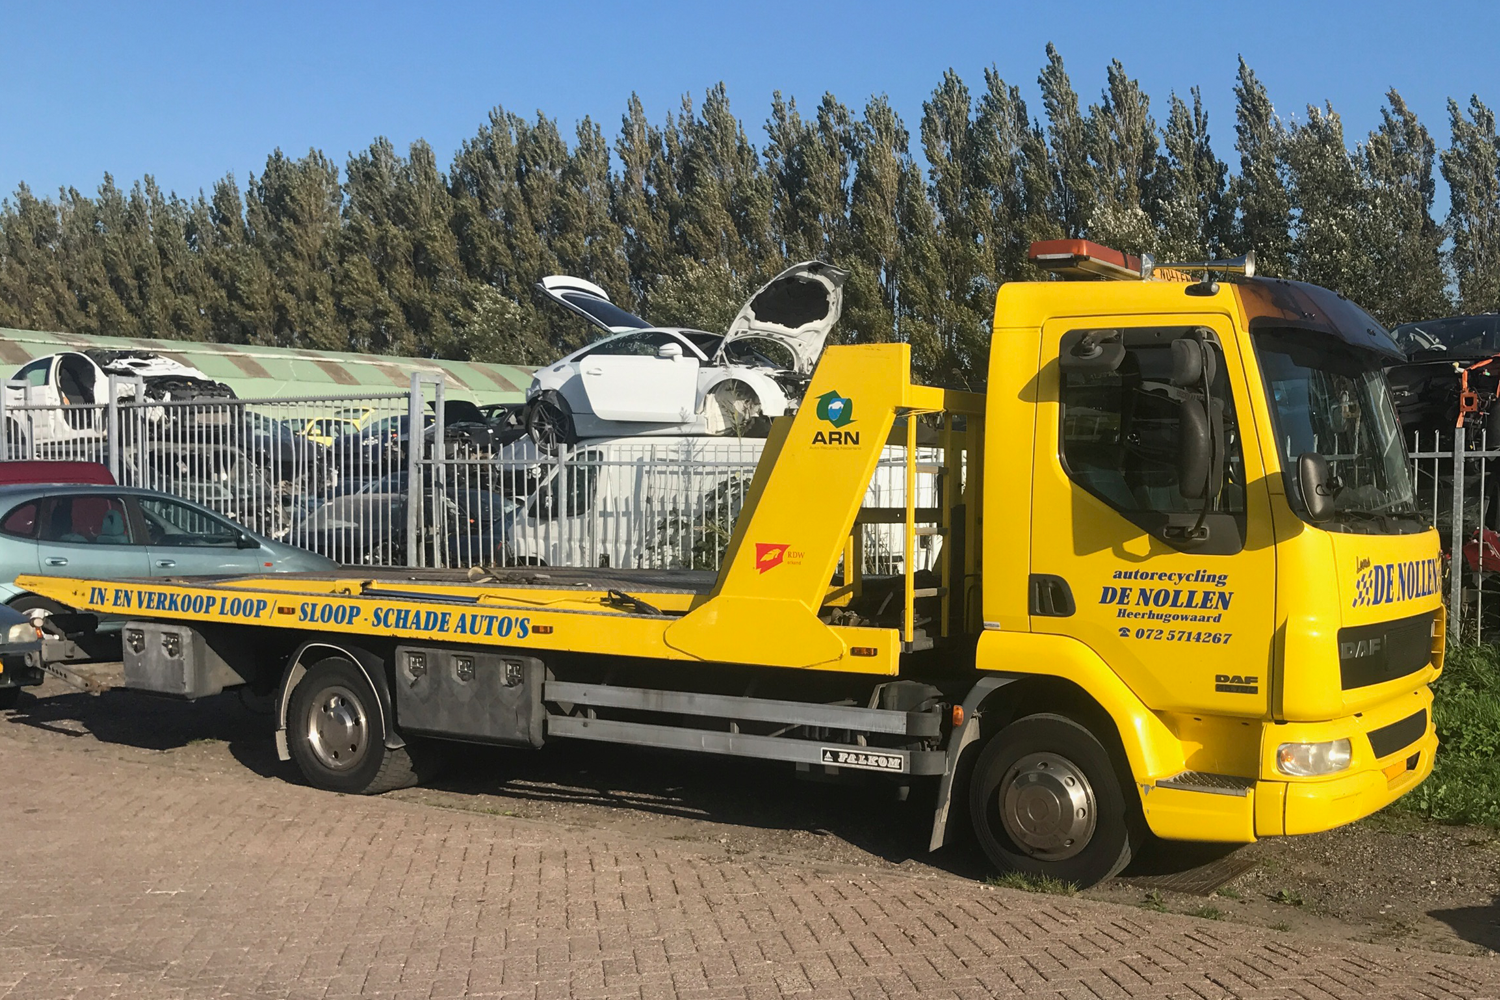 Autogarage & Recycling De Nollen